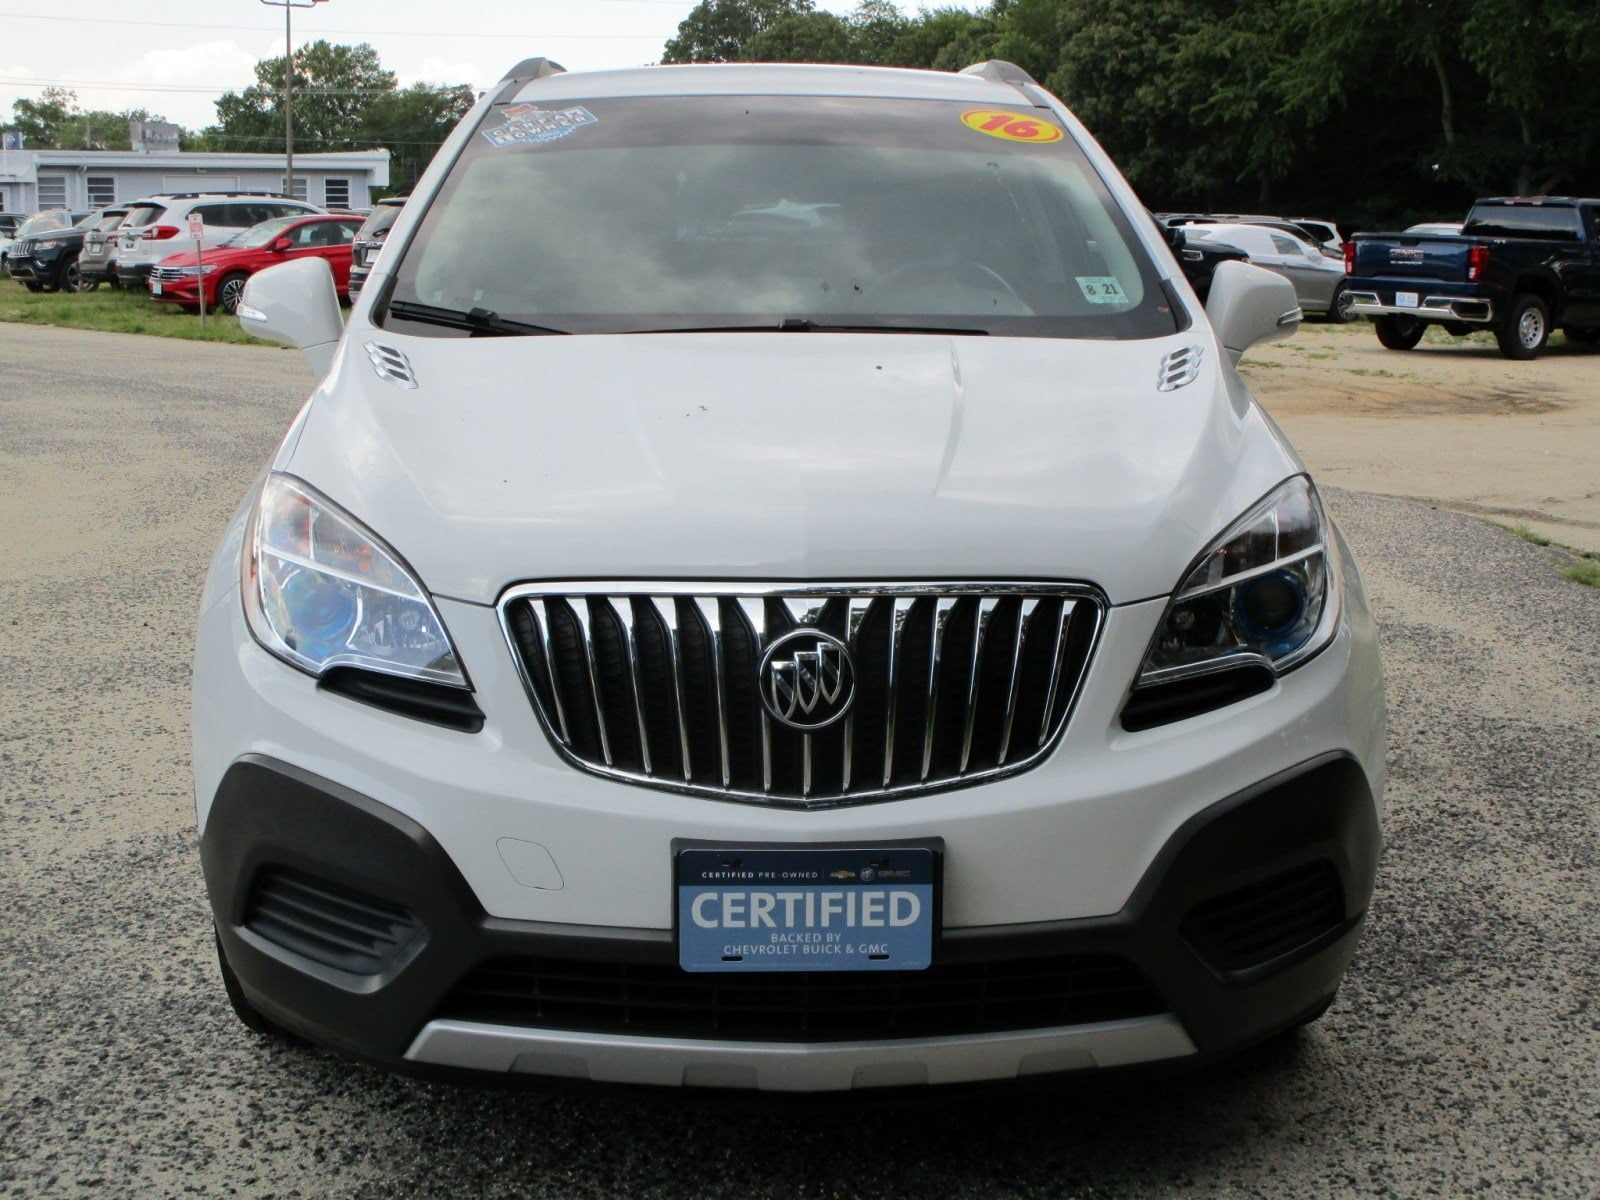 Certified Pre-Owned 2016 Buick Encore For Sale in Cape May County, NJ -  KL4CJASBXGB682649